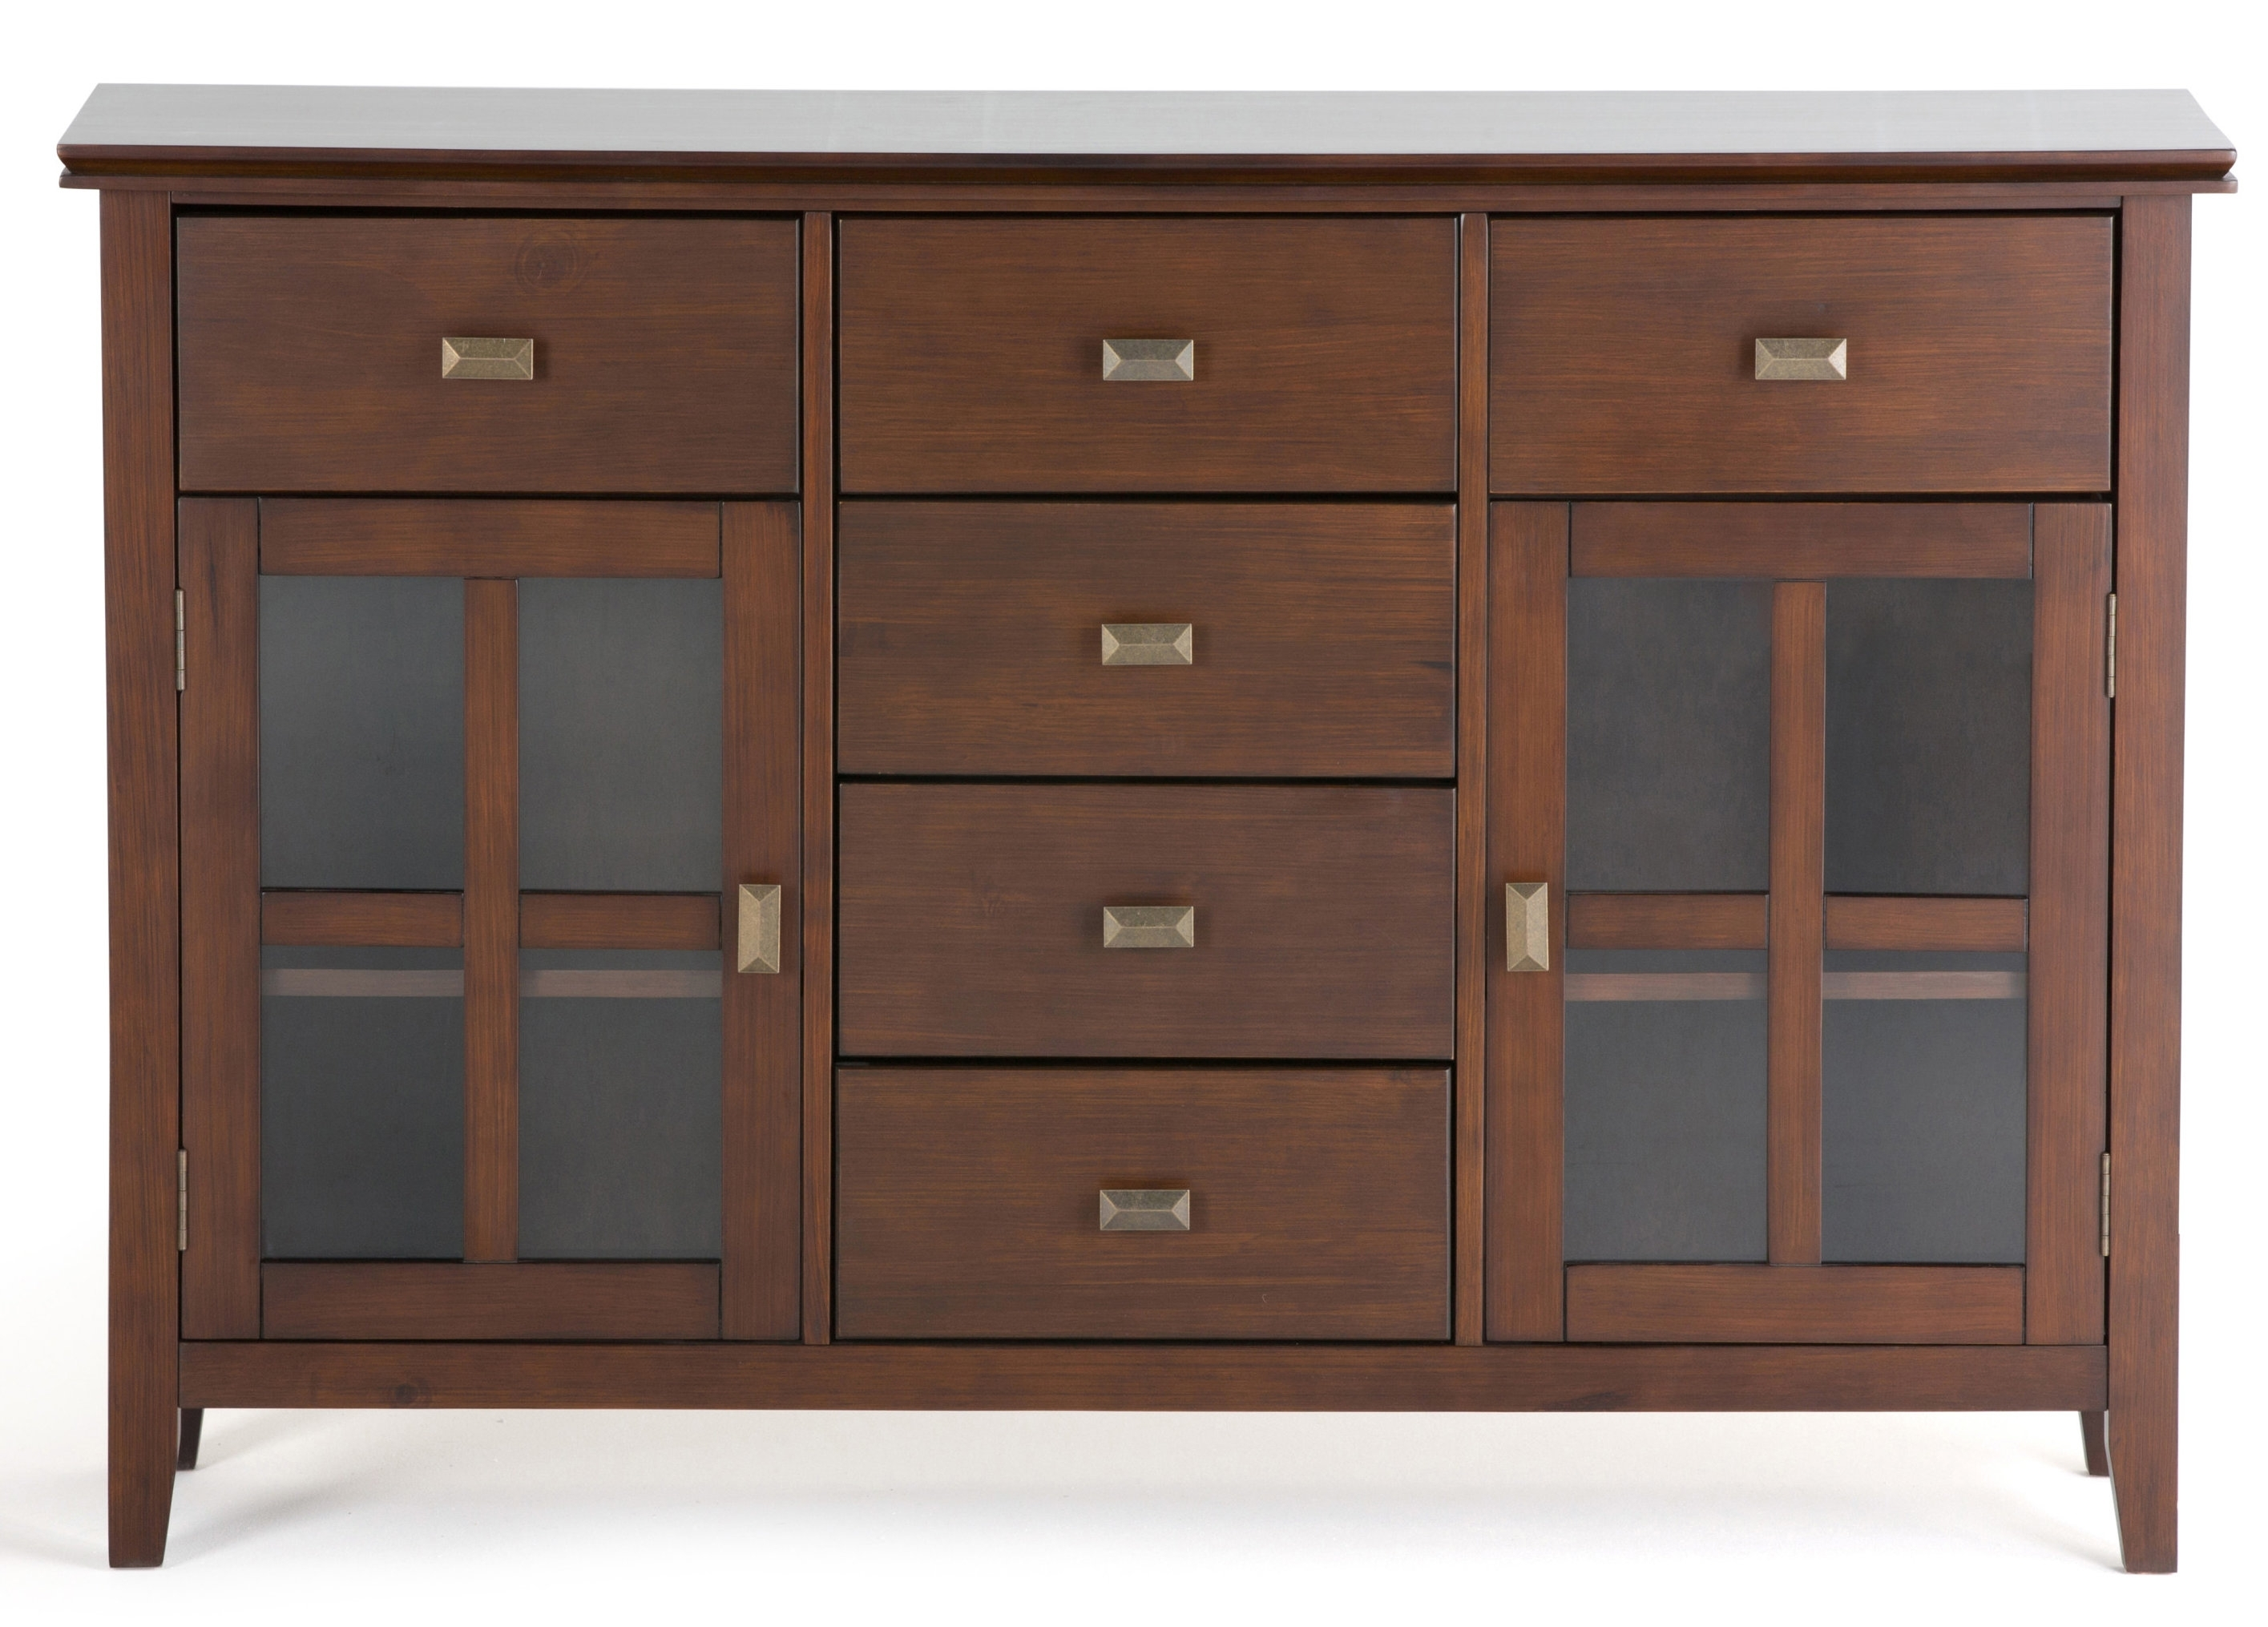 Extra Large Sideboards | Wayfair Pertaining To Best And Newest Vintage Finish 4 Door Sideboards (View 9 of 20)